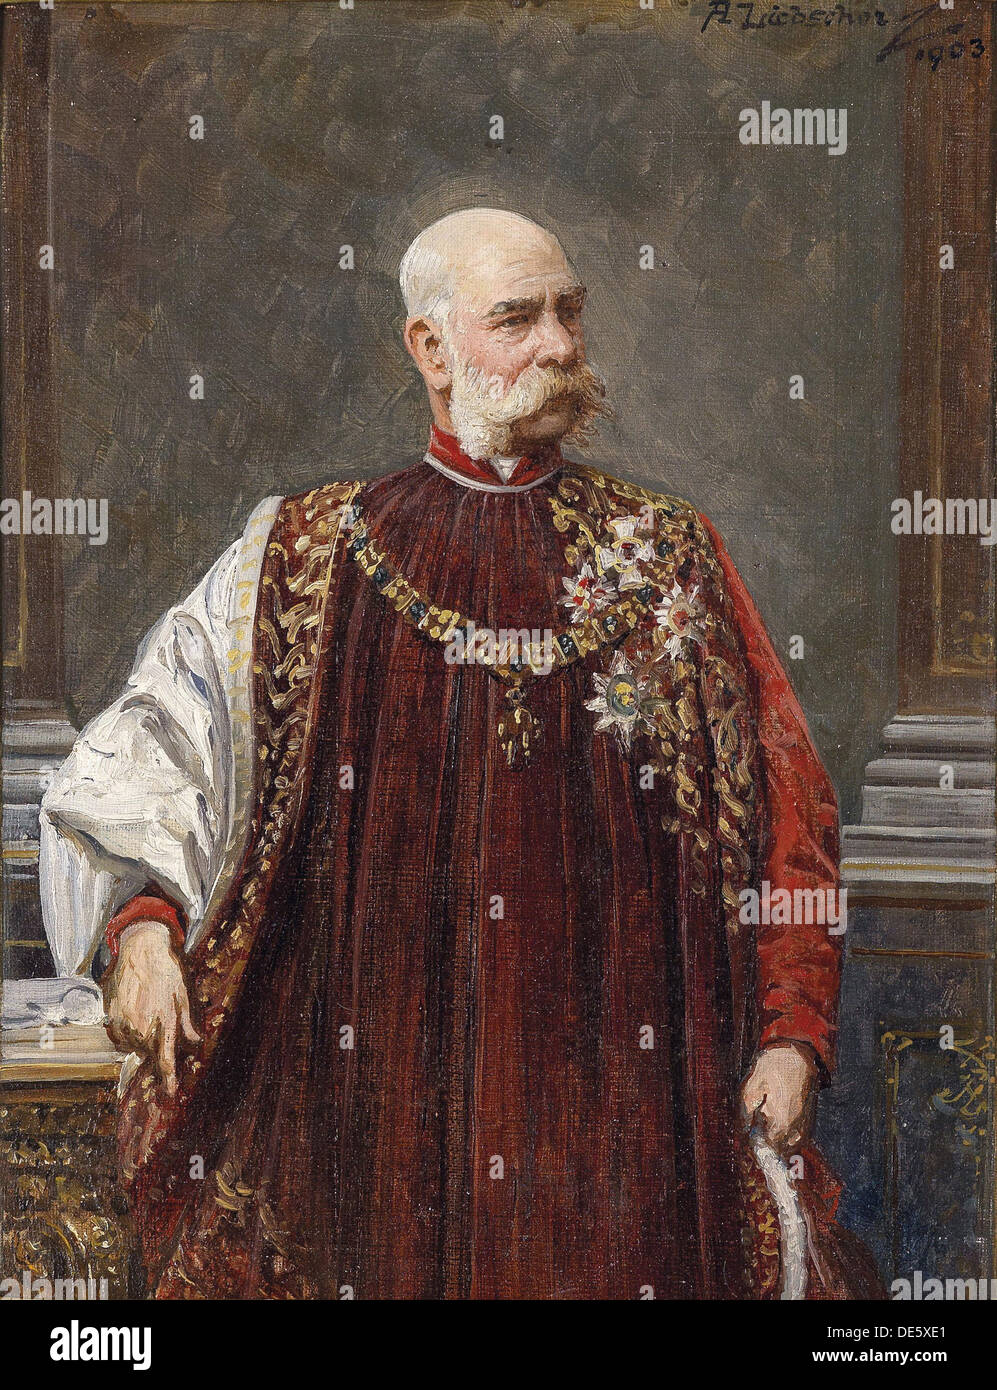 Order of the golden fleece stock photos order of the golden portrait of franz joseph i of austria as grand master of the golden fleece 1903 biocorpaavc Choice Image